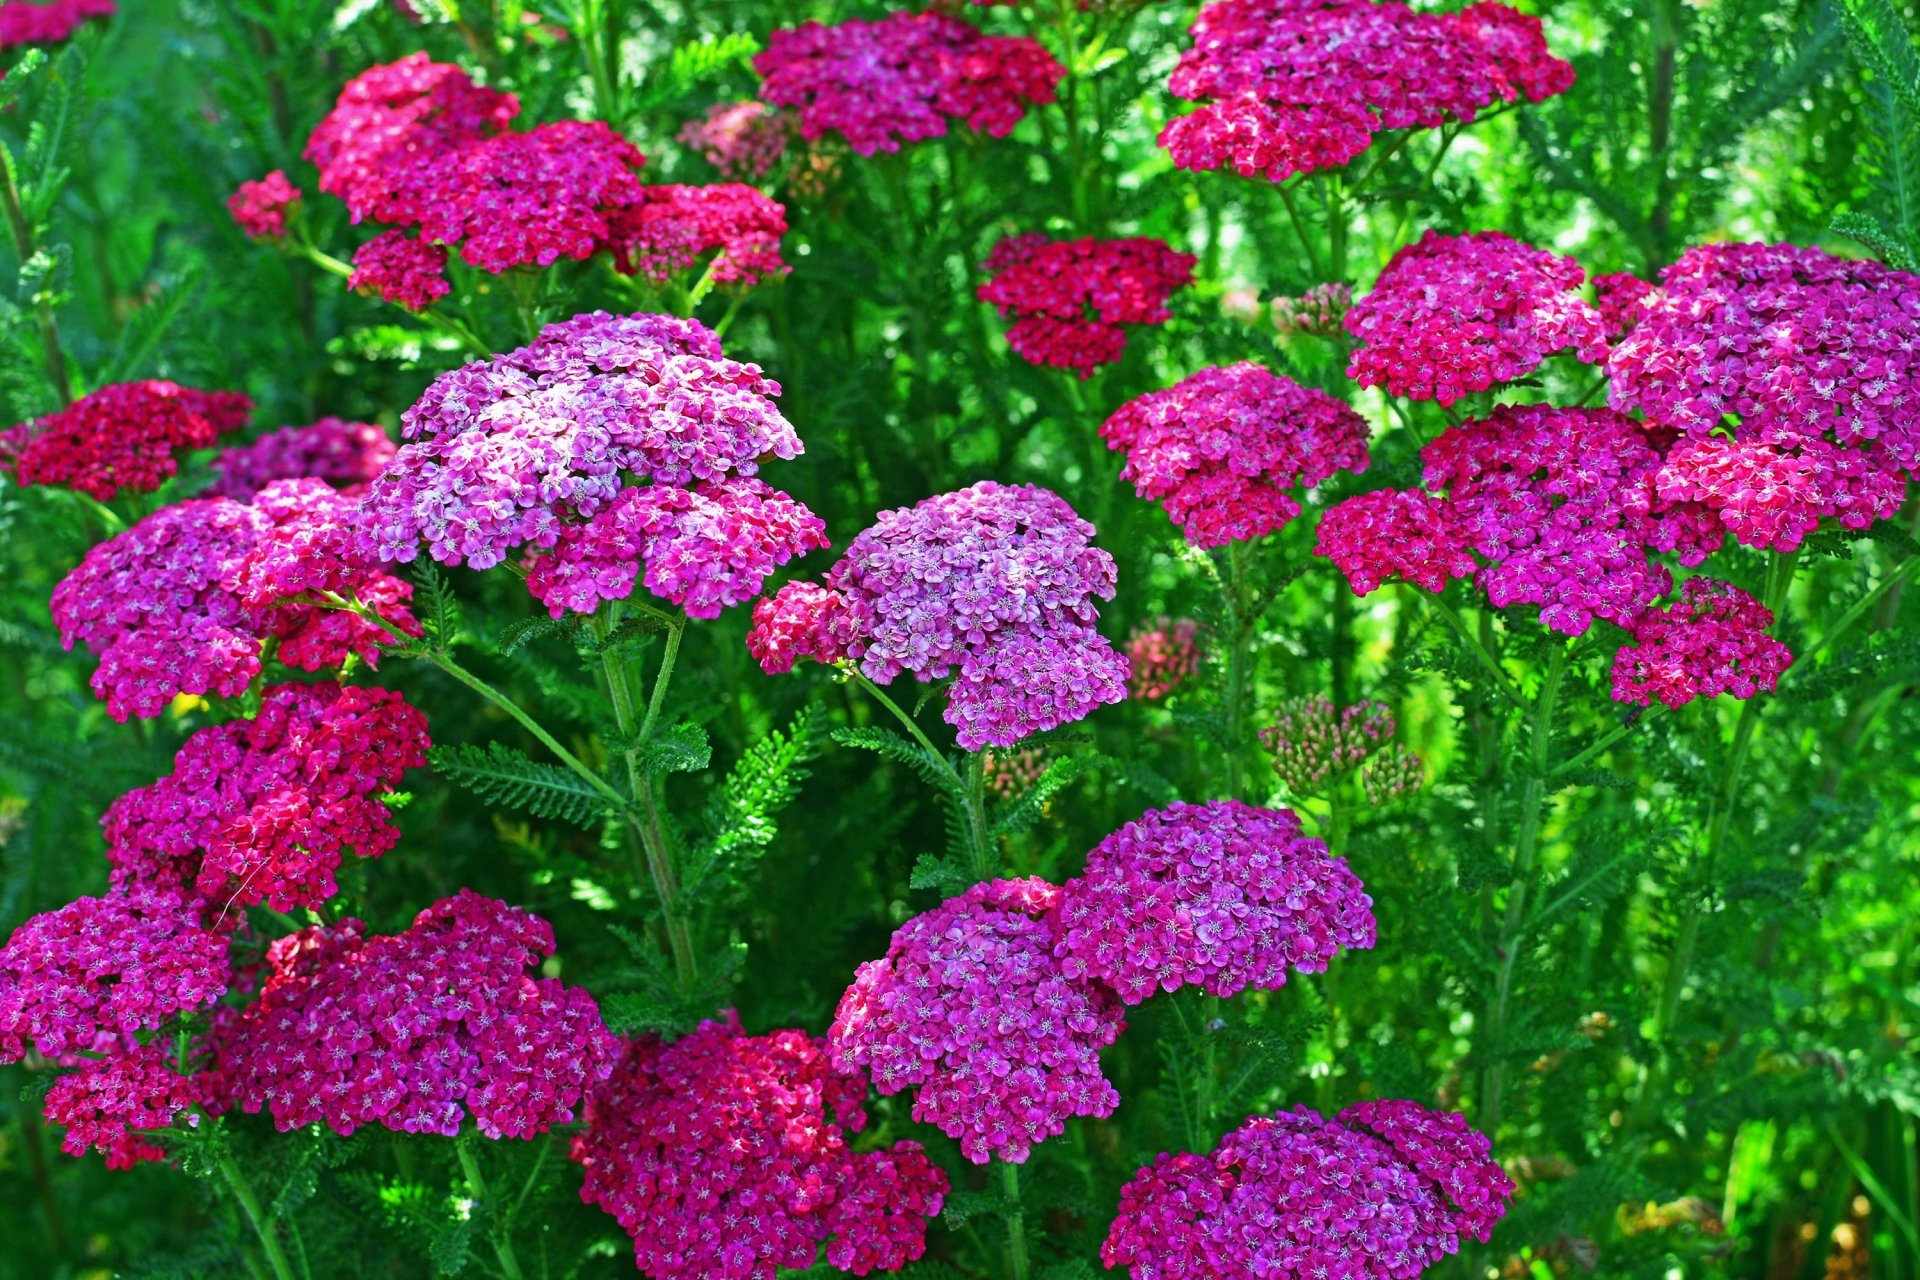 Verbena Flowers Full HD Wallpaper and Background 3000x2000